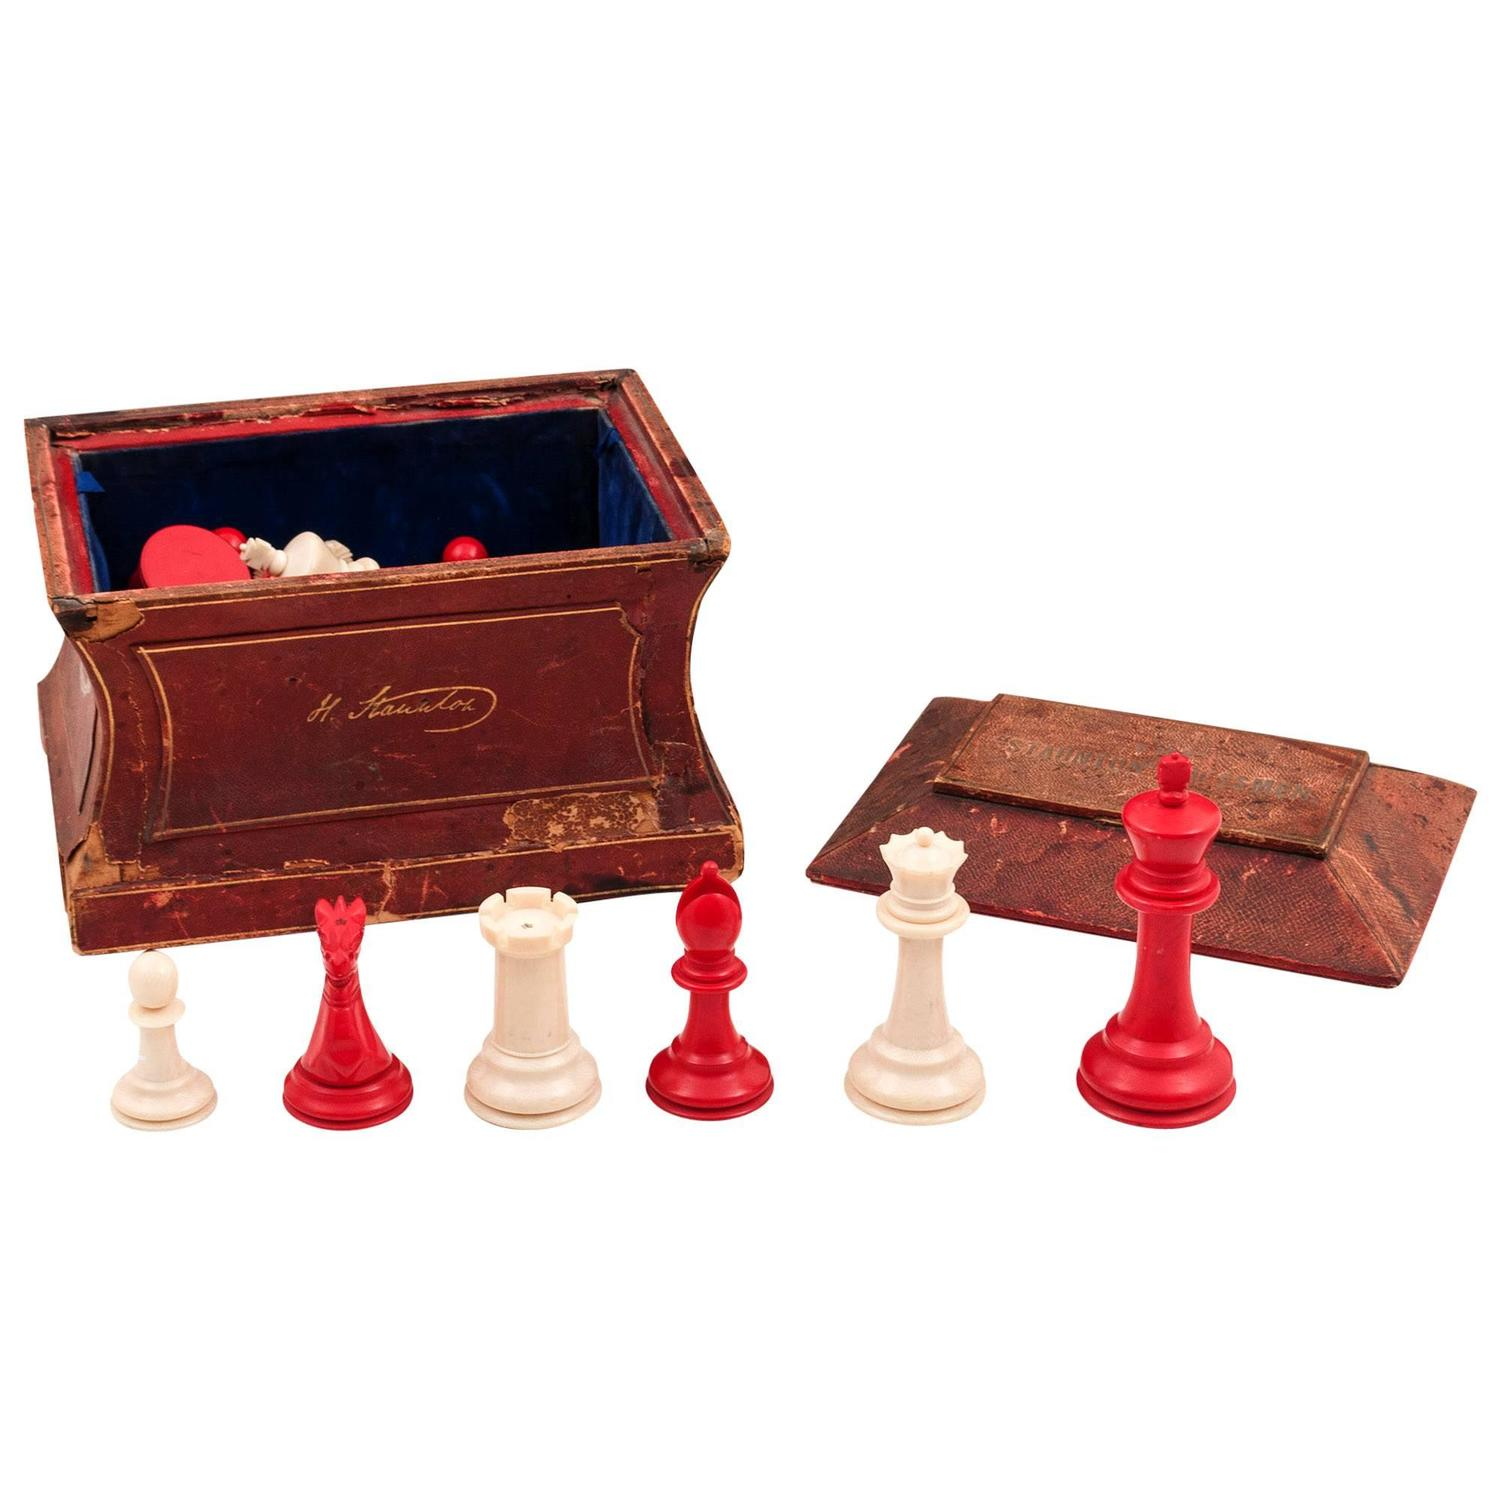 Large Jacques Staunton Chess Set For Sale At 1stdibs